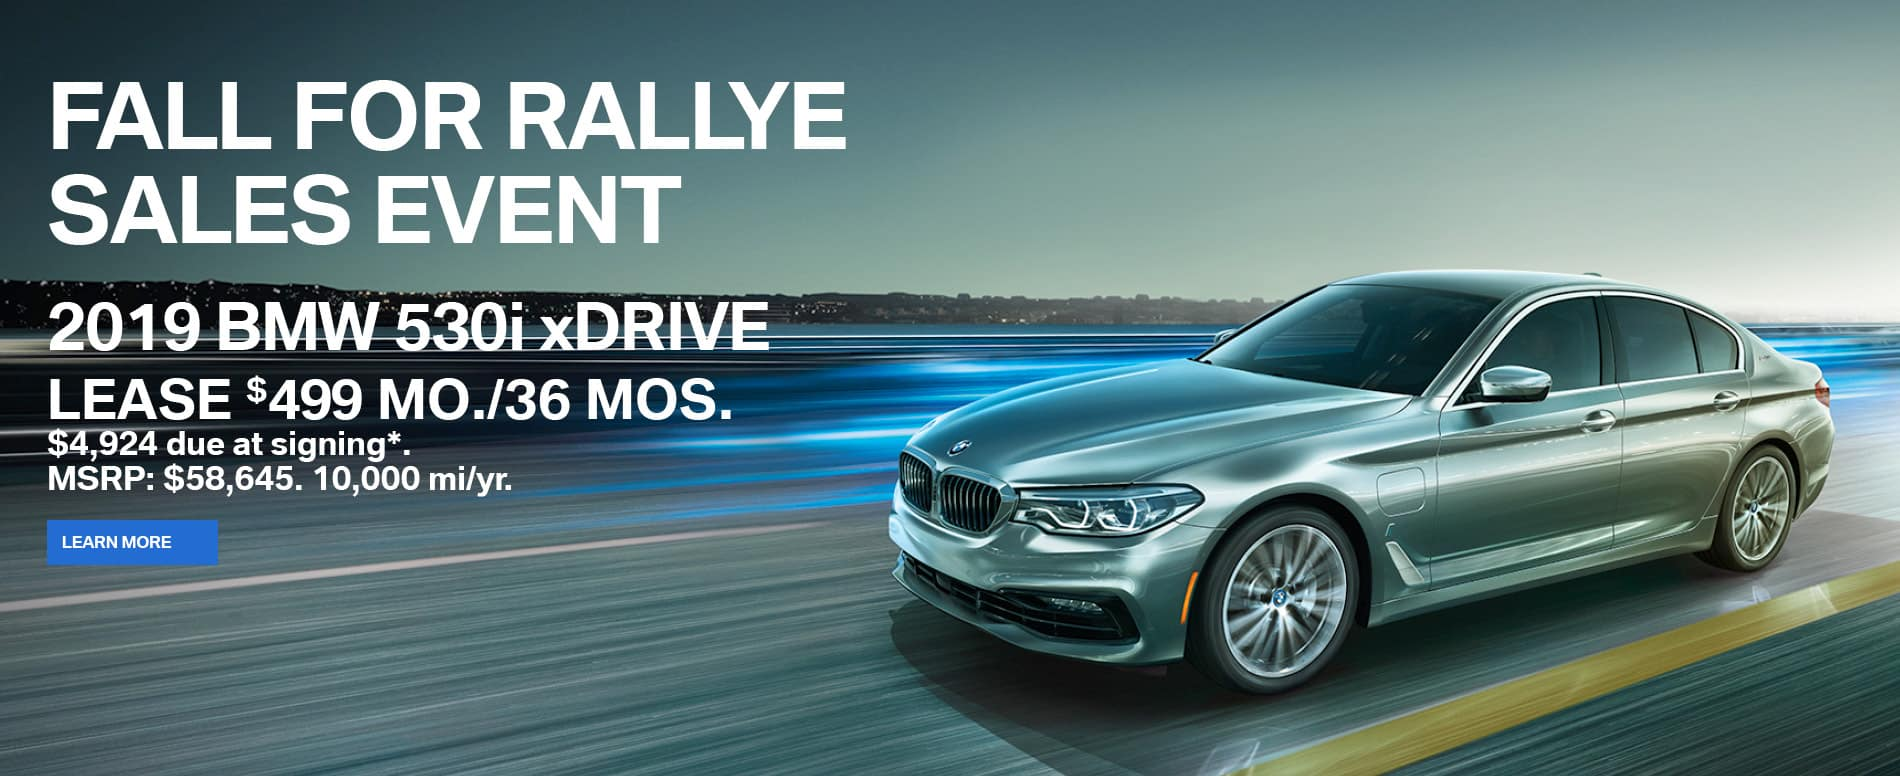 Bmw Dealer Near Me >> Rallye Bmw New Pre Owned Bmw Dealer In Long Island Ny